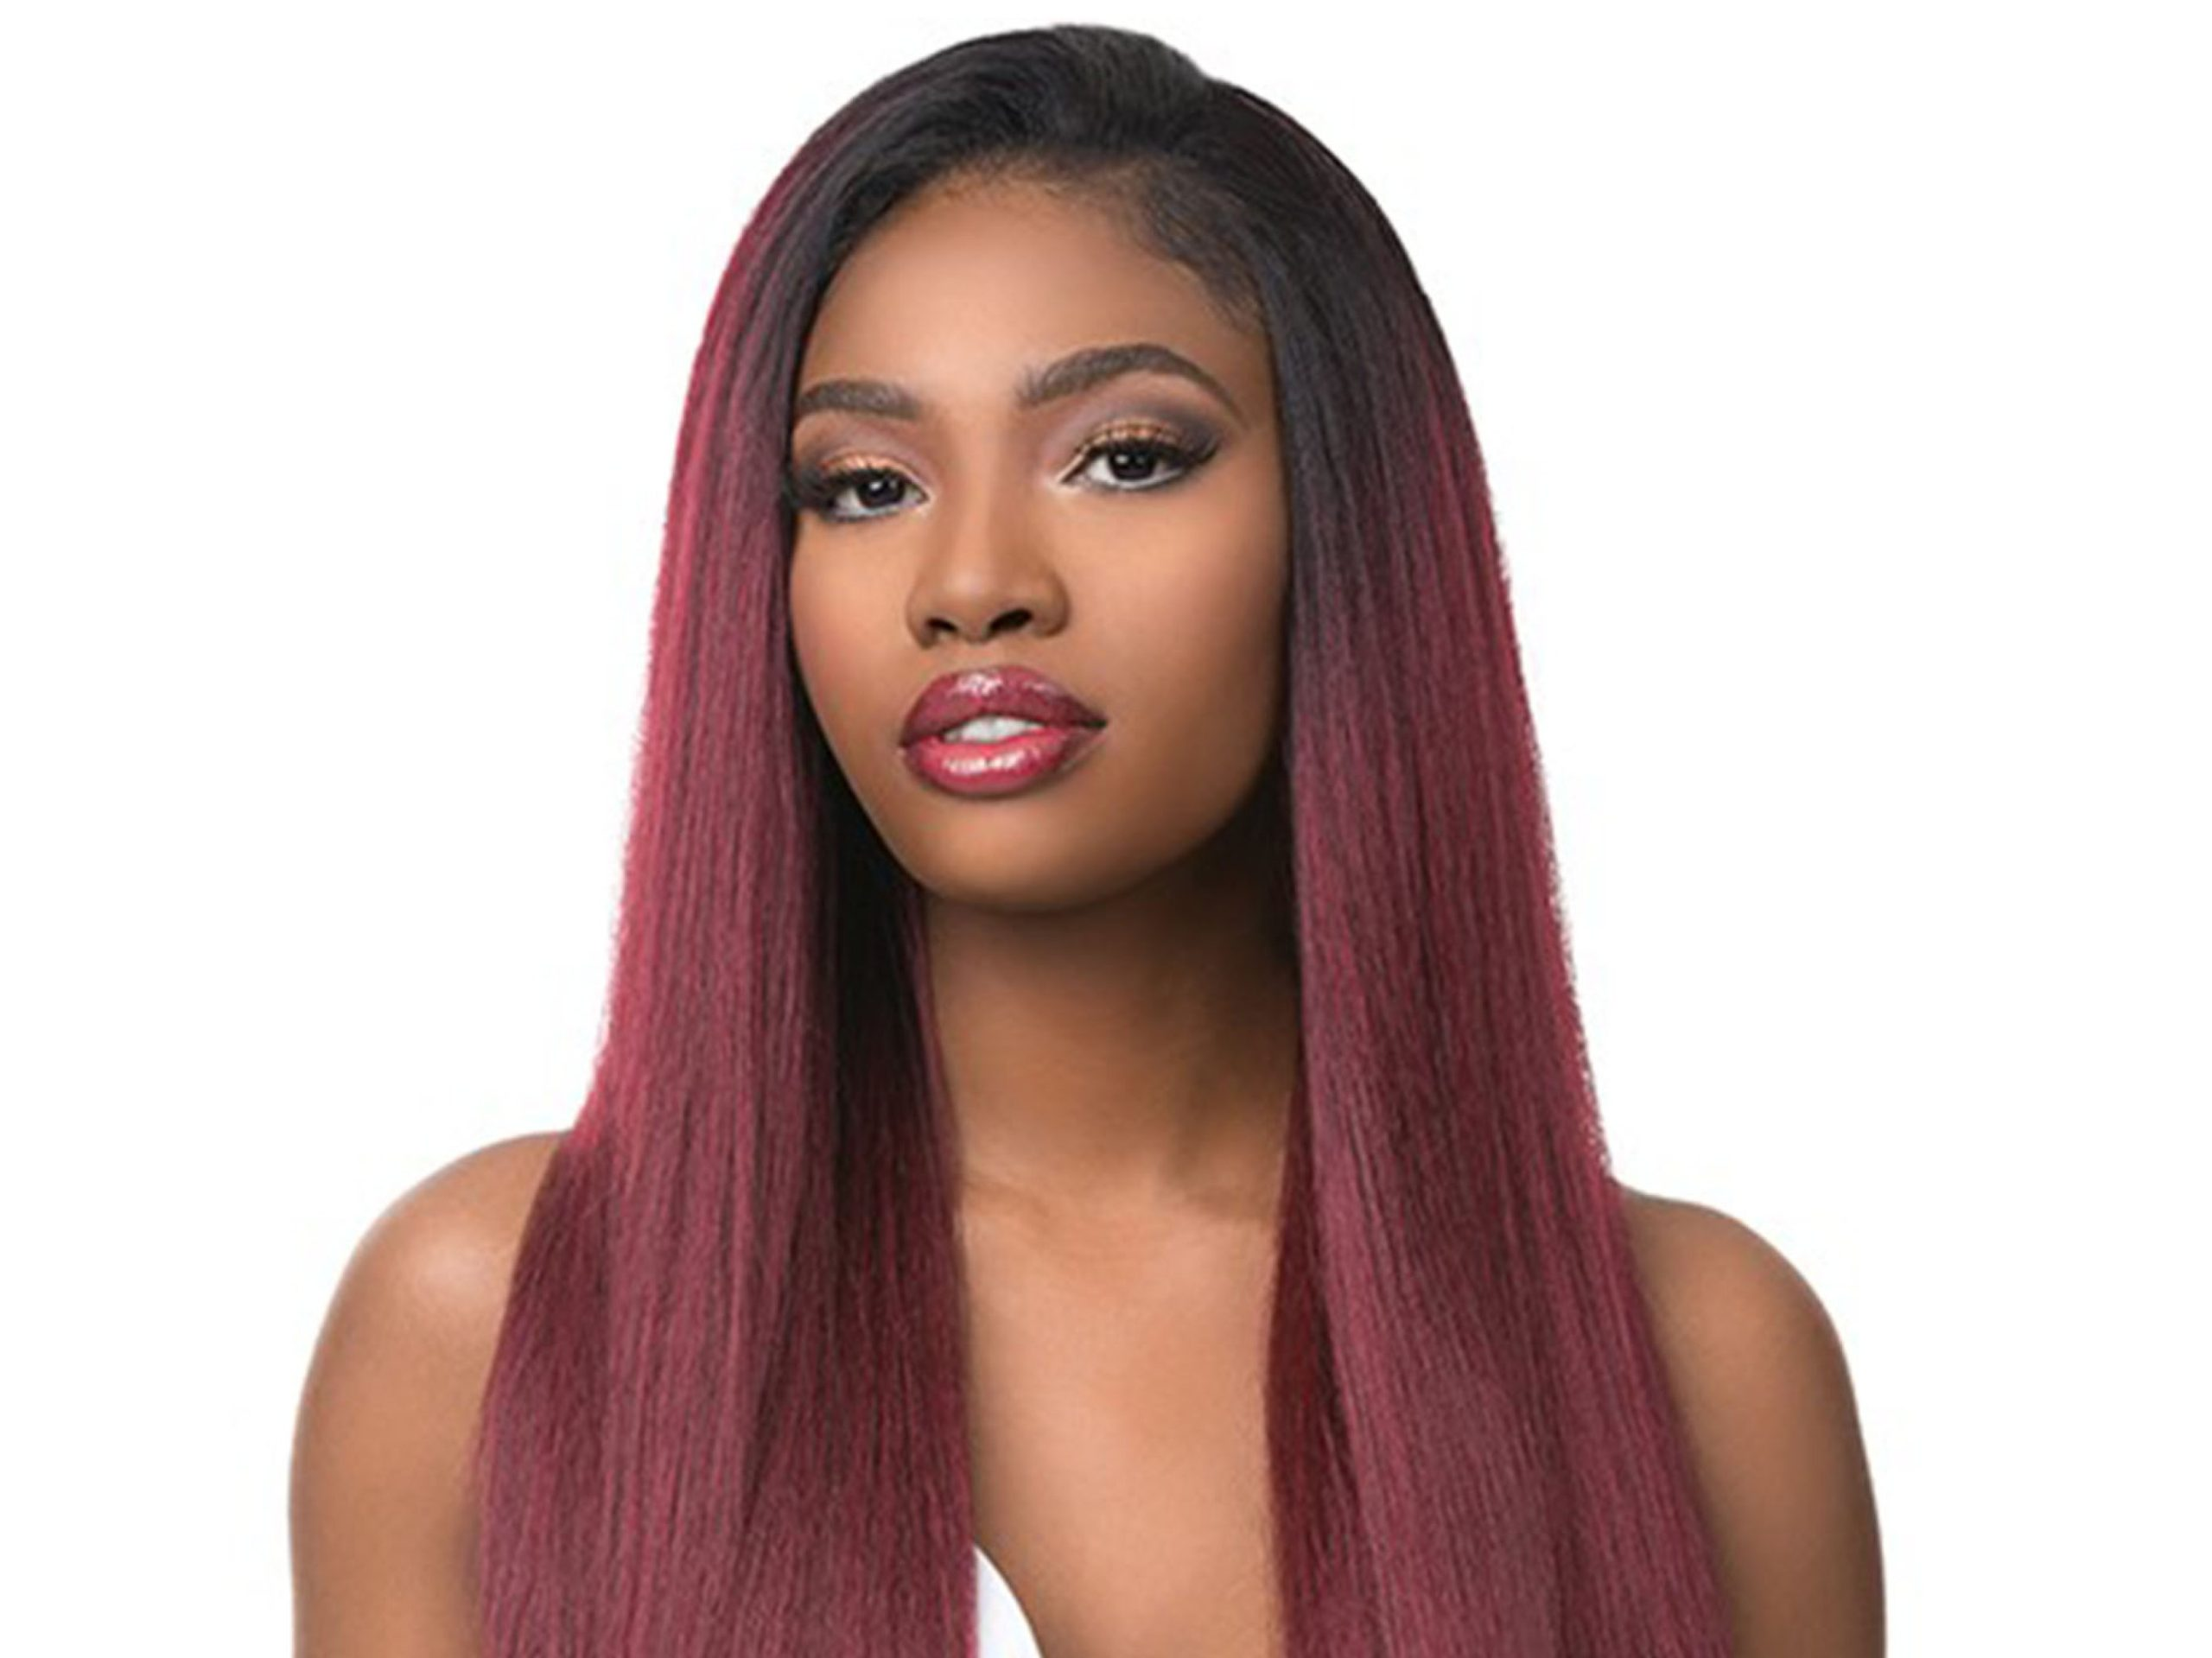 Things To Consider Before Buying A Wig